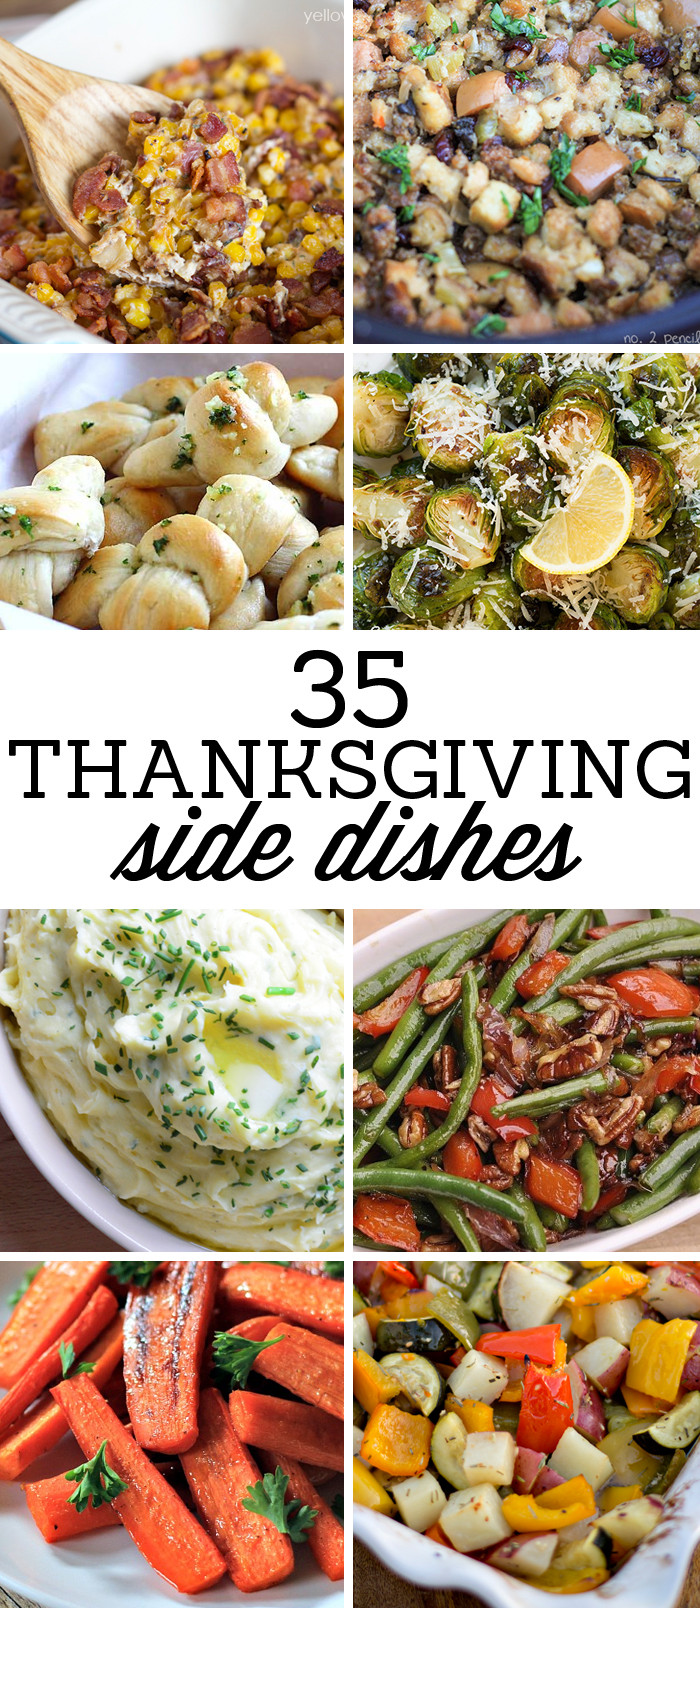 Best Christmas Side Dishes  35 Side Dishes for Christmas Dinner Yellow Bliss Road